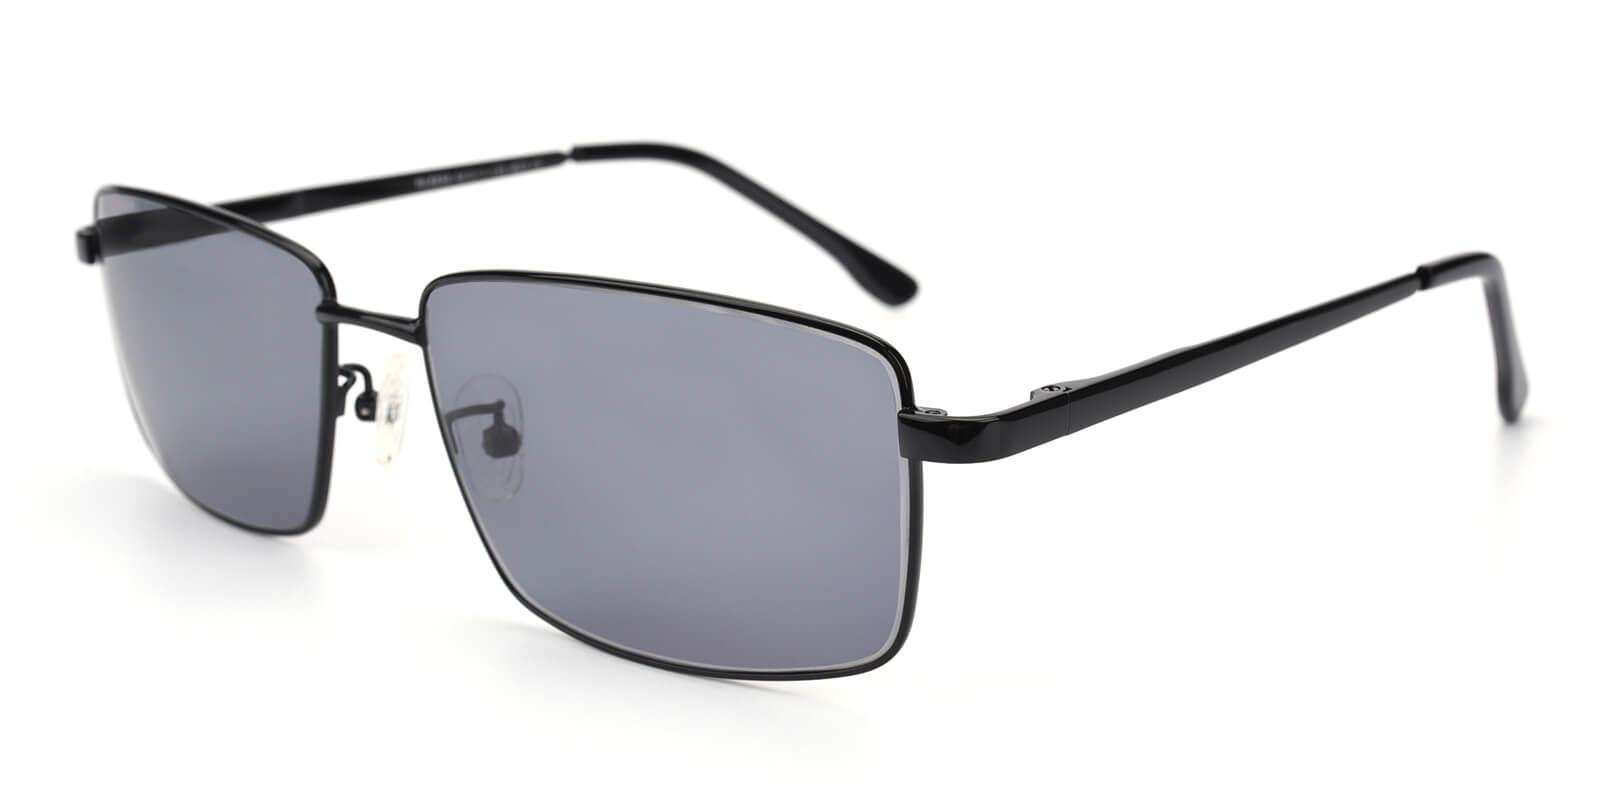 Sea-Black-Rectangle-Metal-Sunglasses-additional1